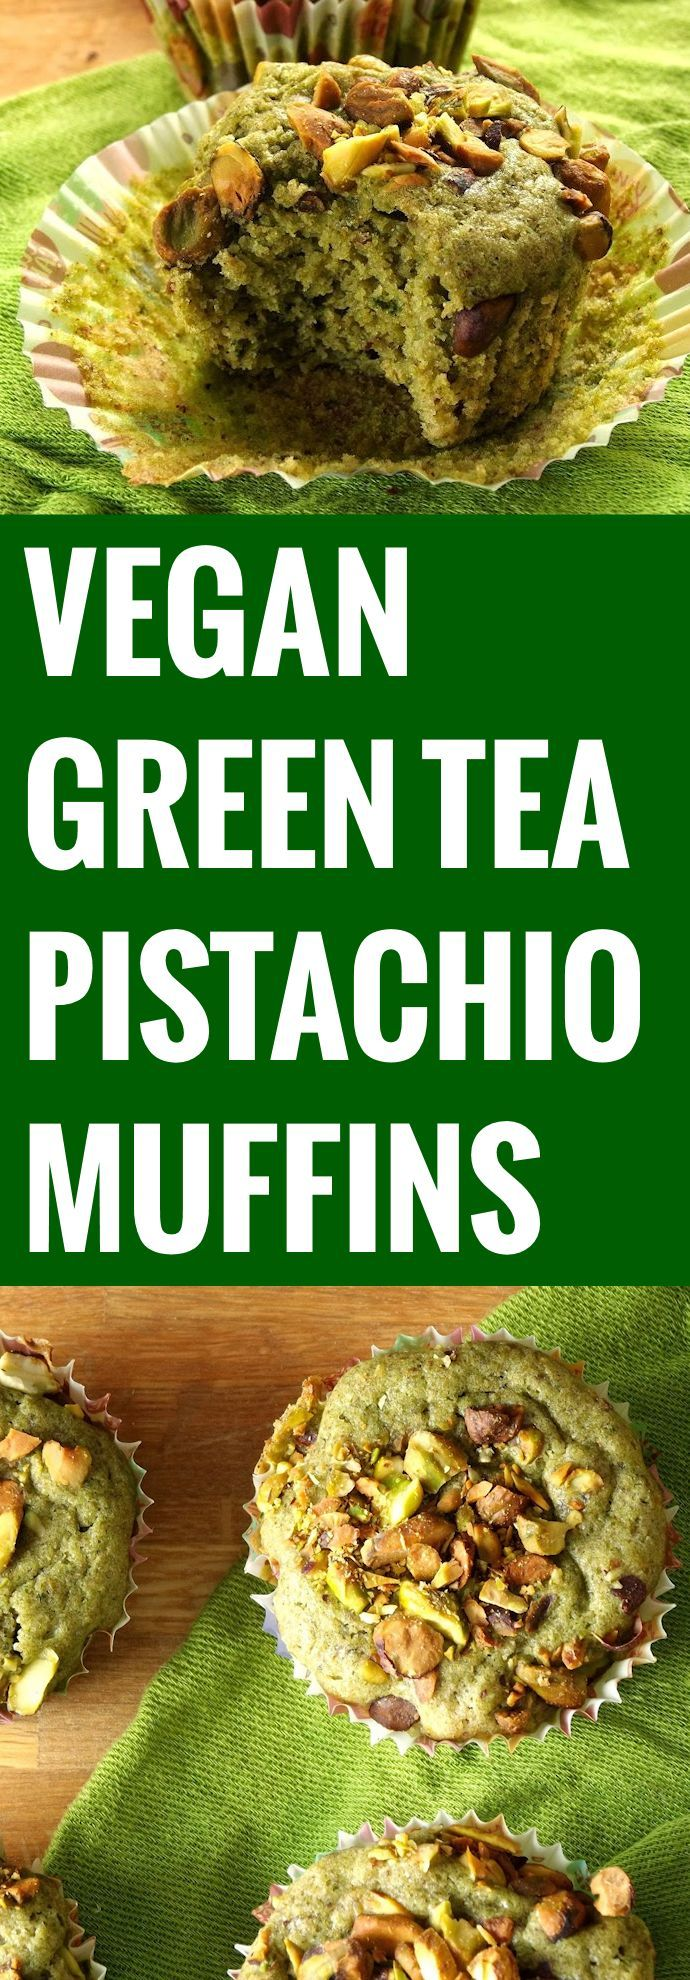 Green Tea Pistachio Muffins #vegan recipe